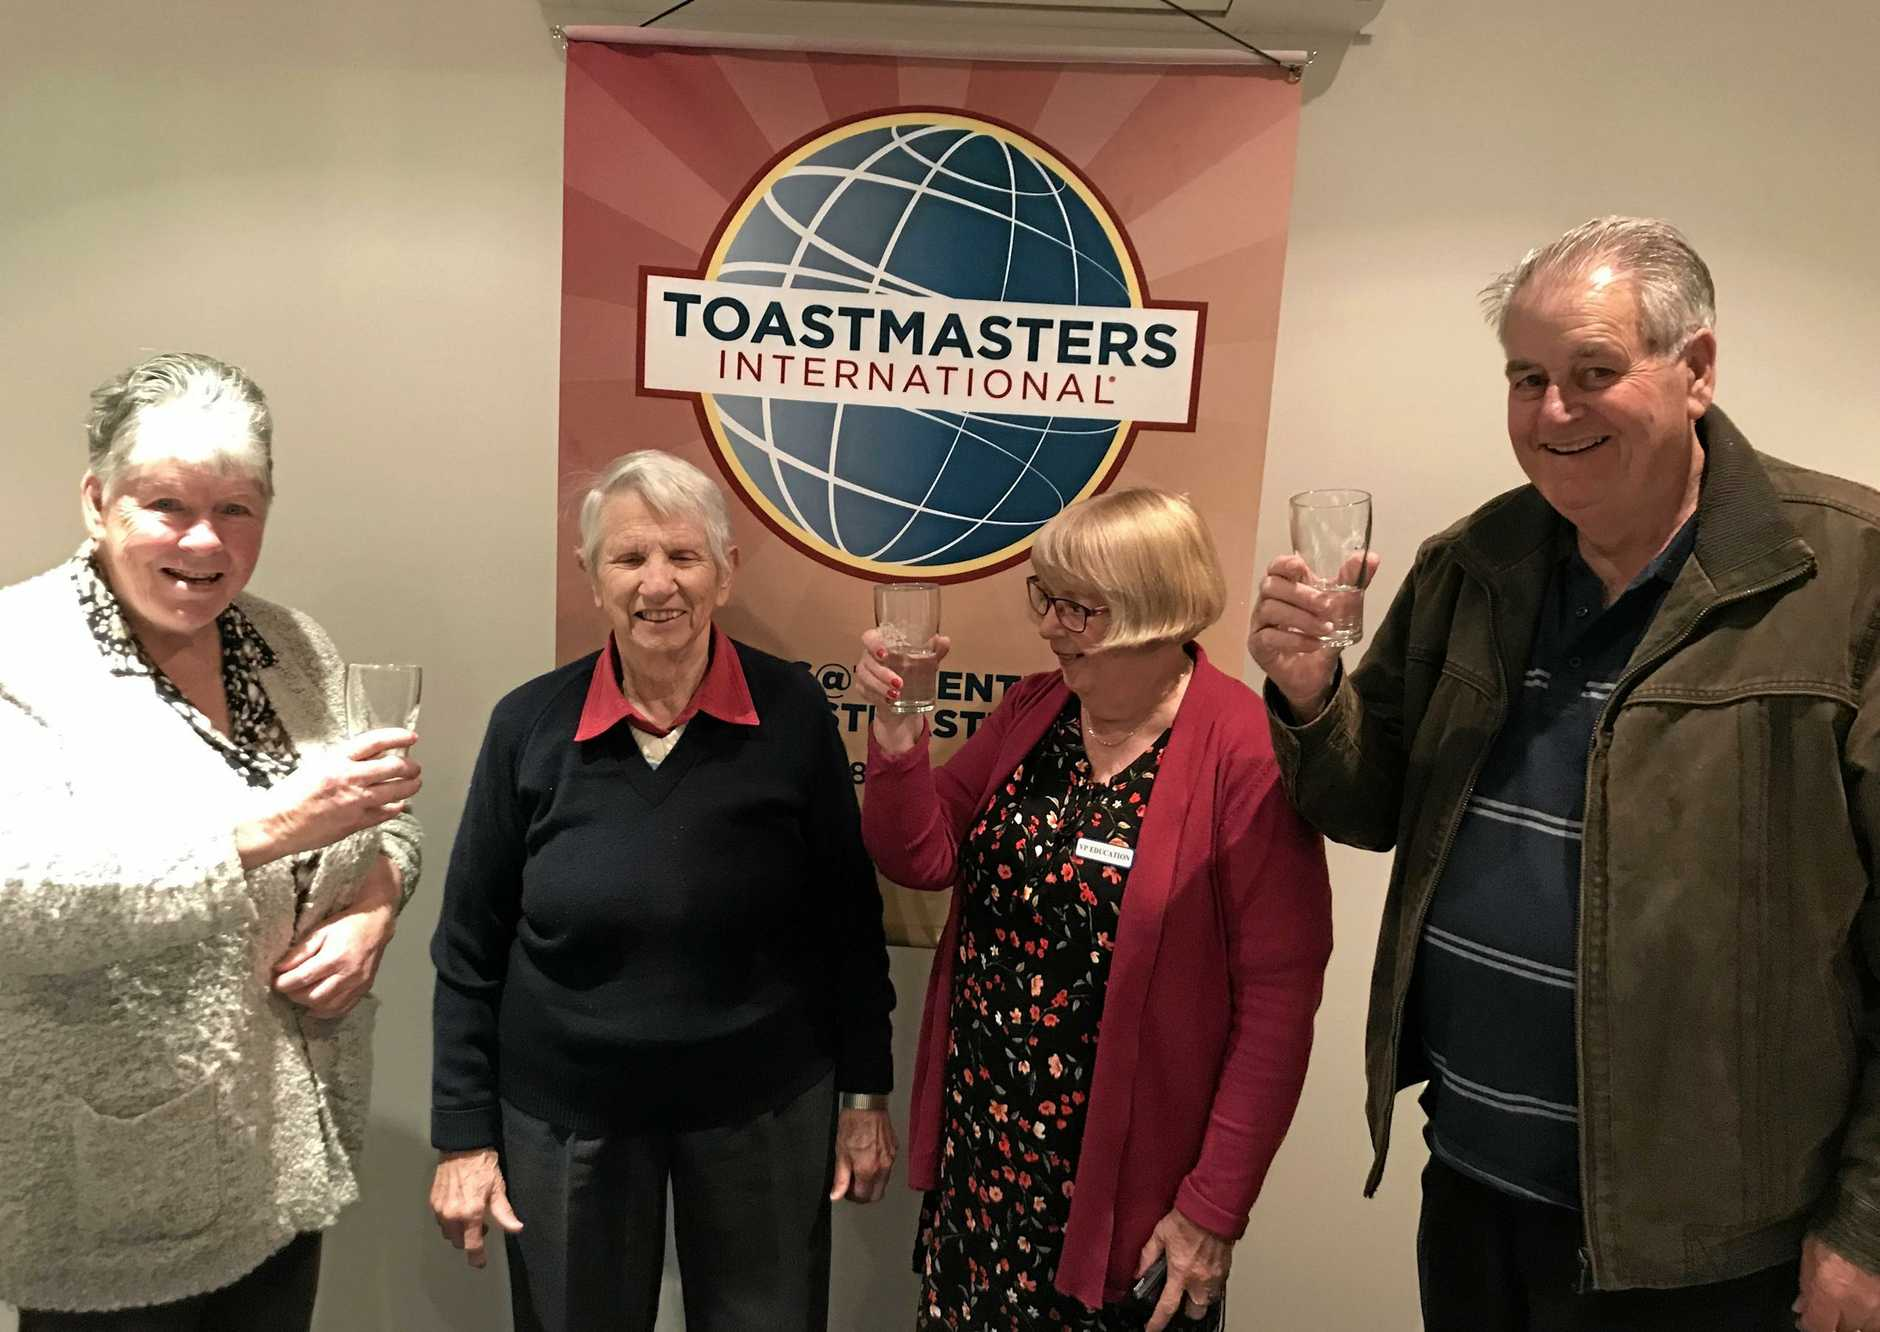 BIRTHDAY TOAST: Three cheers for Shirley Goodbar of Lisarow. Age is but a number and no barrier for this inspiring Toastmasters member.